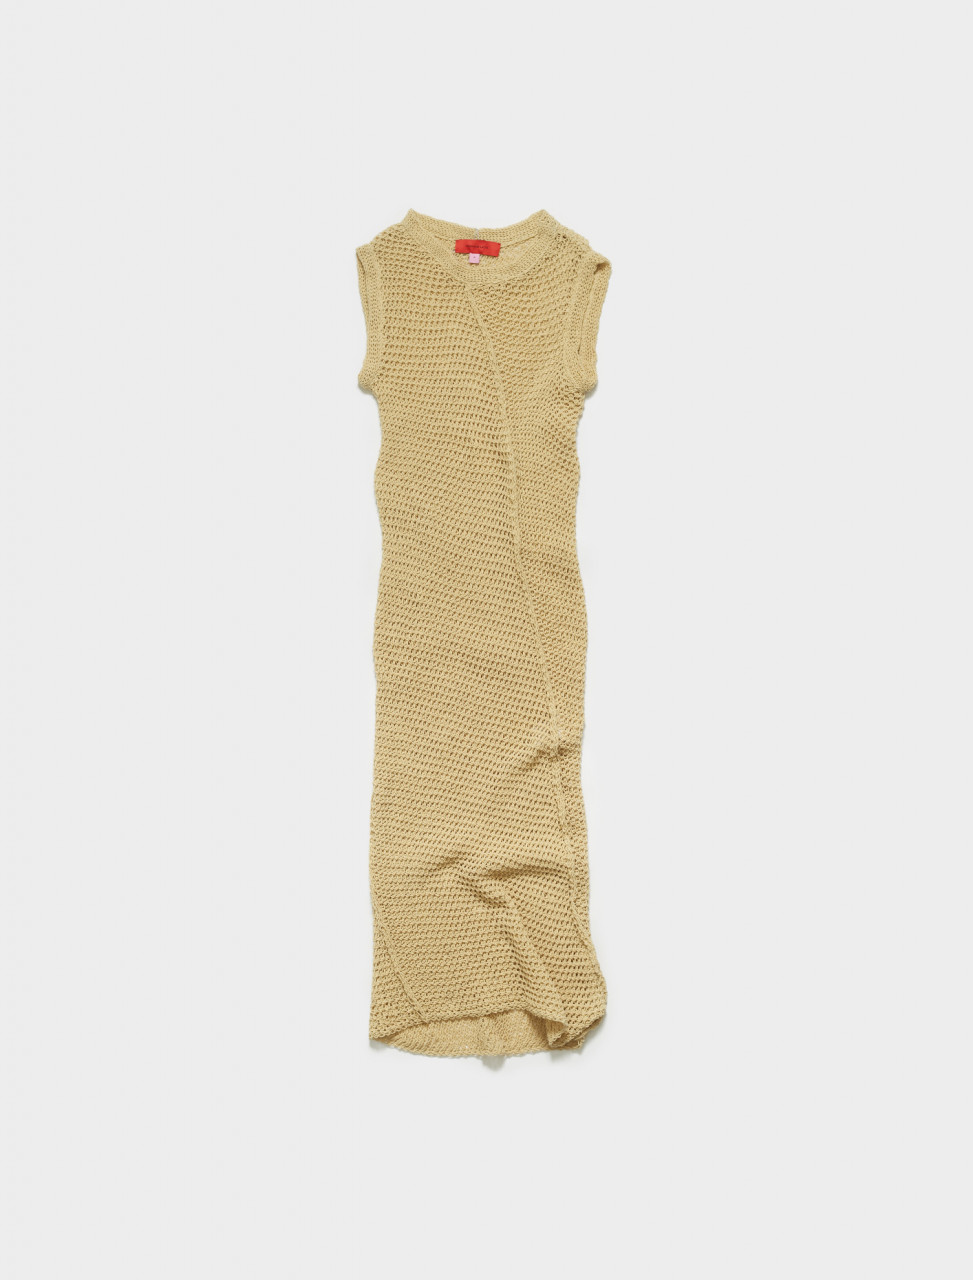 270-864-EL-SS20-IS ECKHAUS LATTA WINDING DRESS ITALIAN STRAW